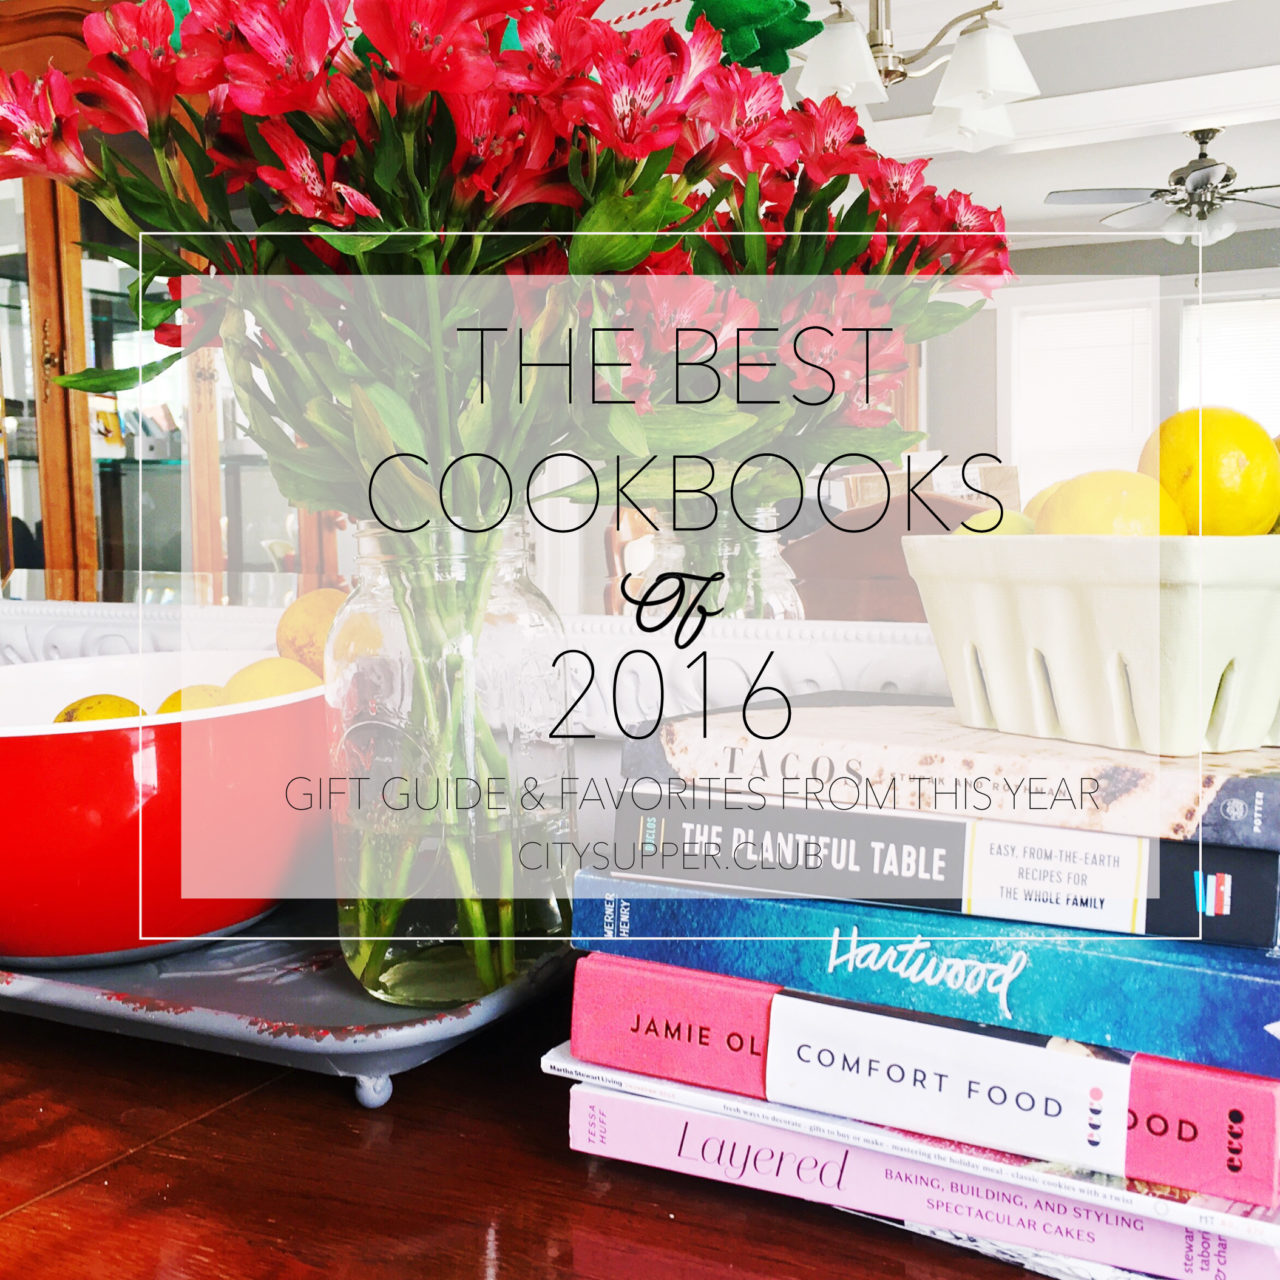 My Favorite Cookbooks this Year (2016)